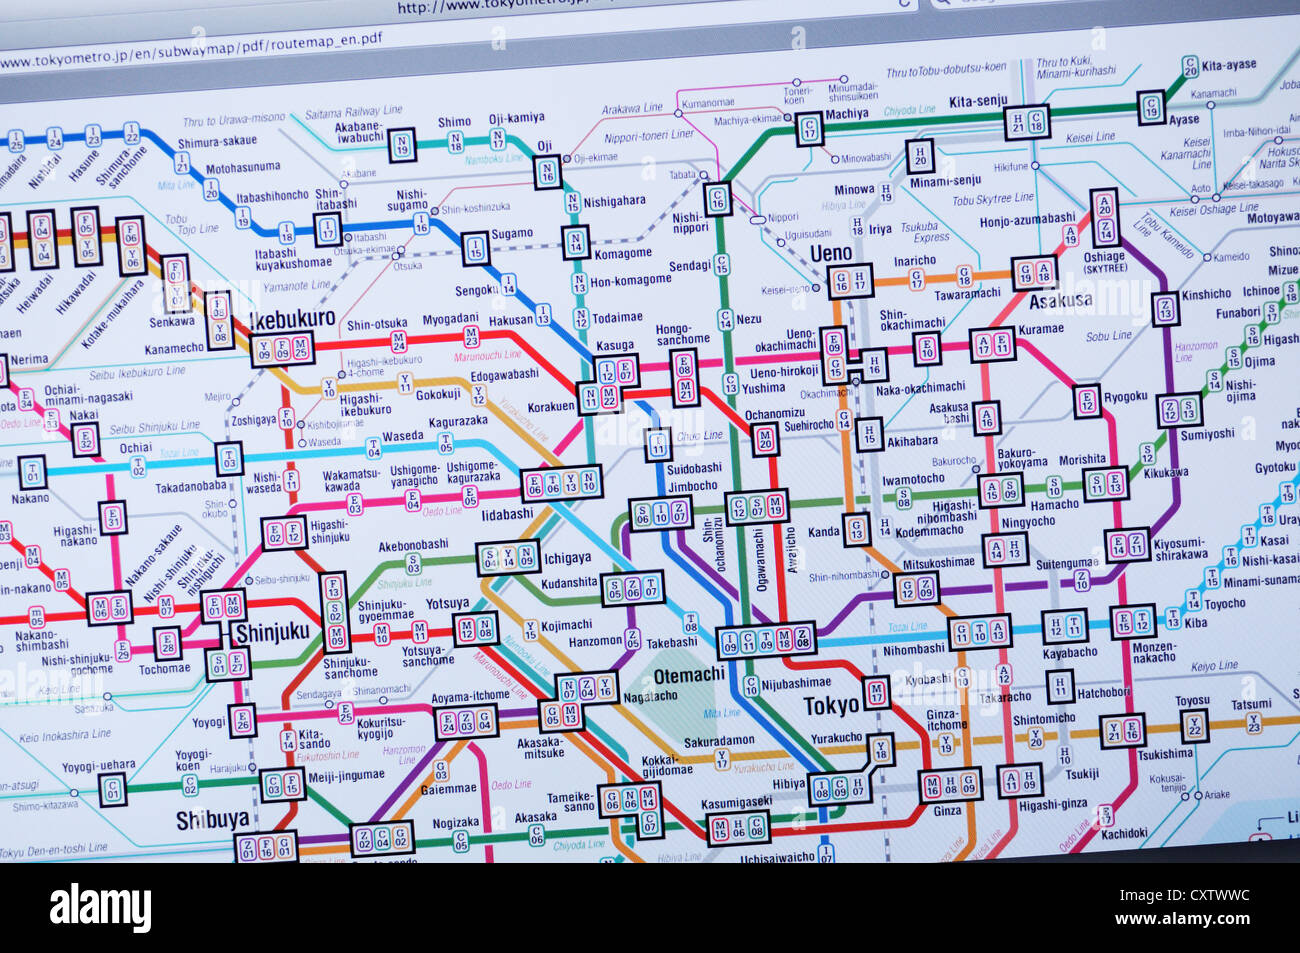 Tokyo Subway Map With Attractions.Tokyo Map Stock Photos Tokyo Map Stock Images Alamy